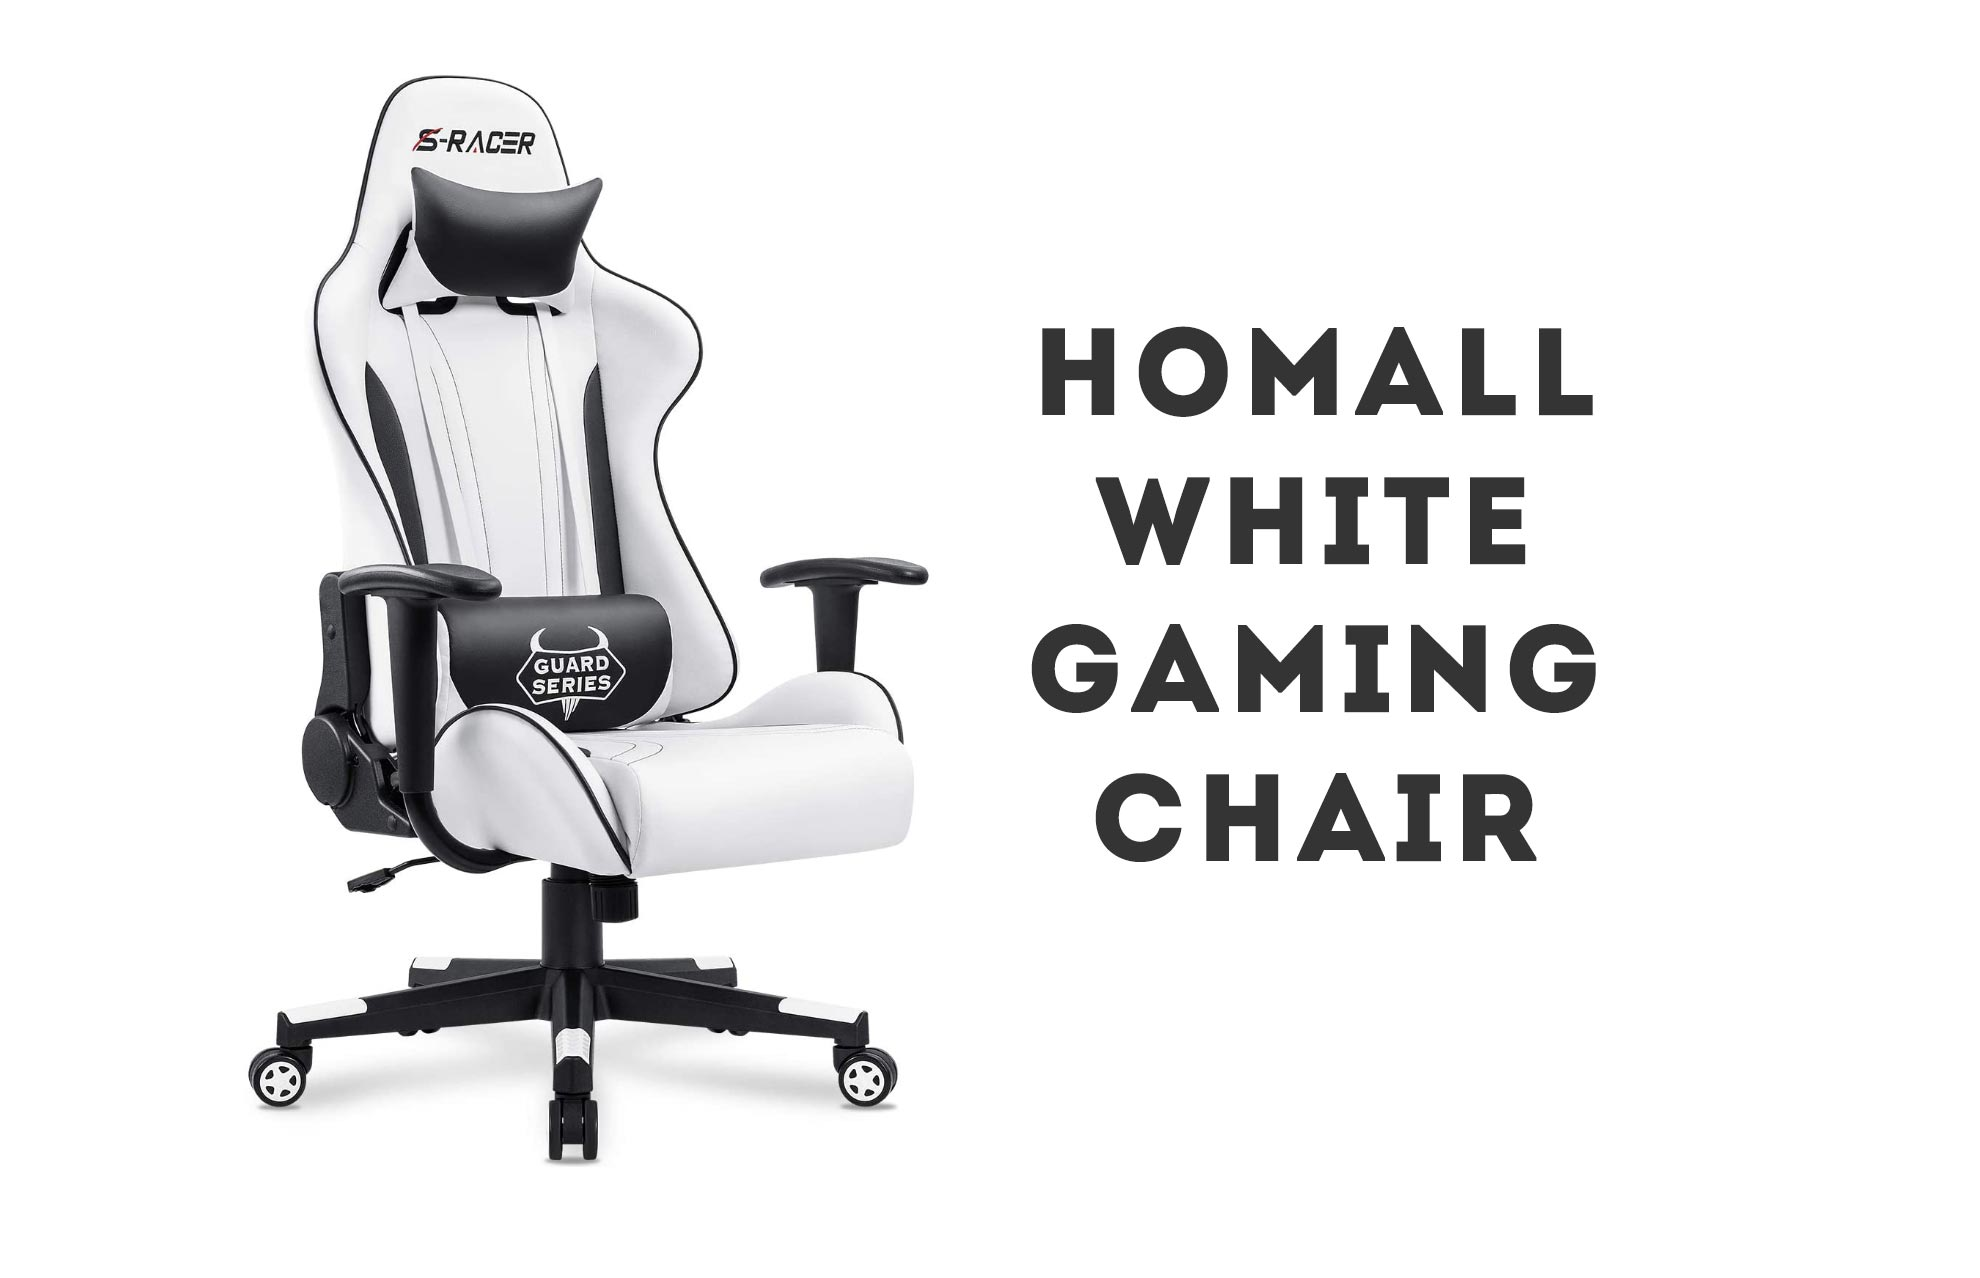 Homall White Gaming Chair